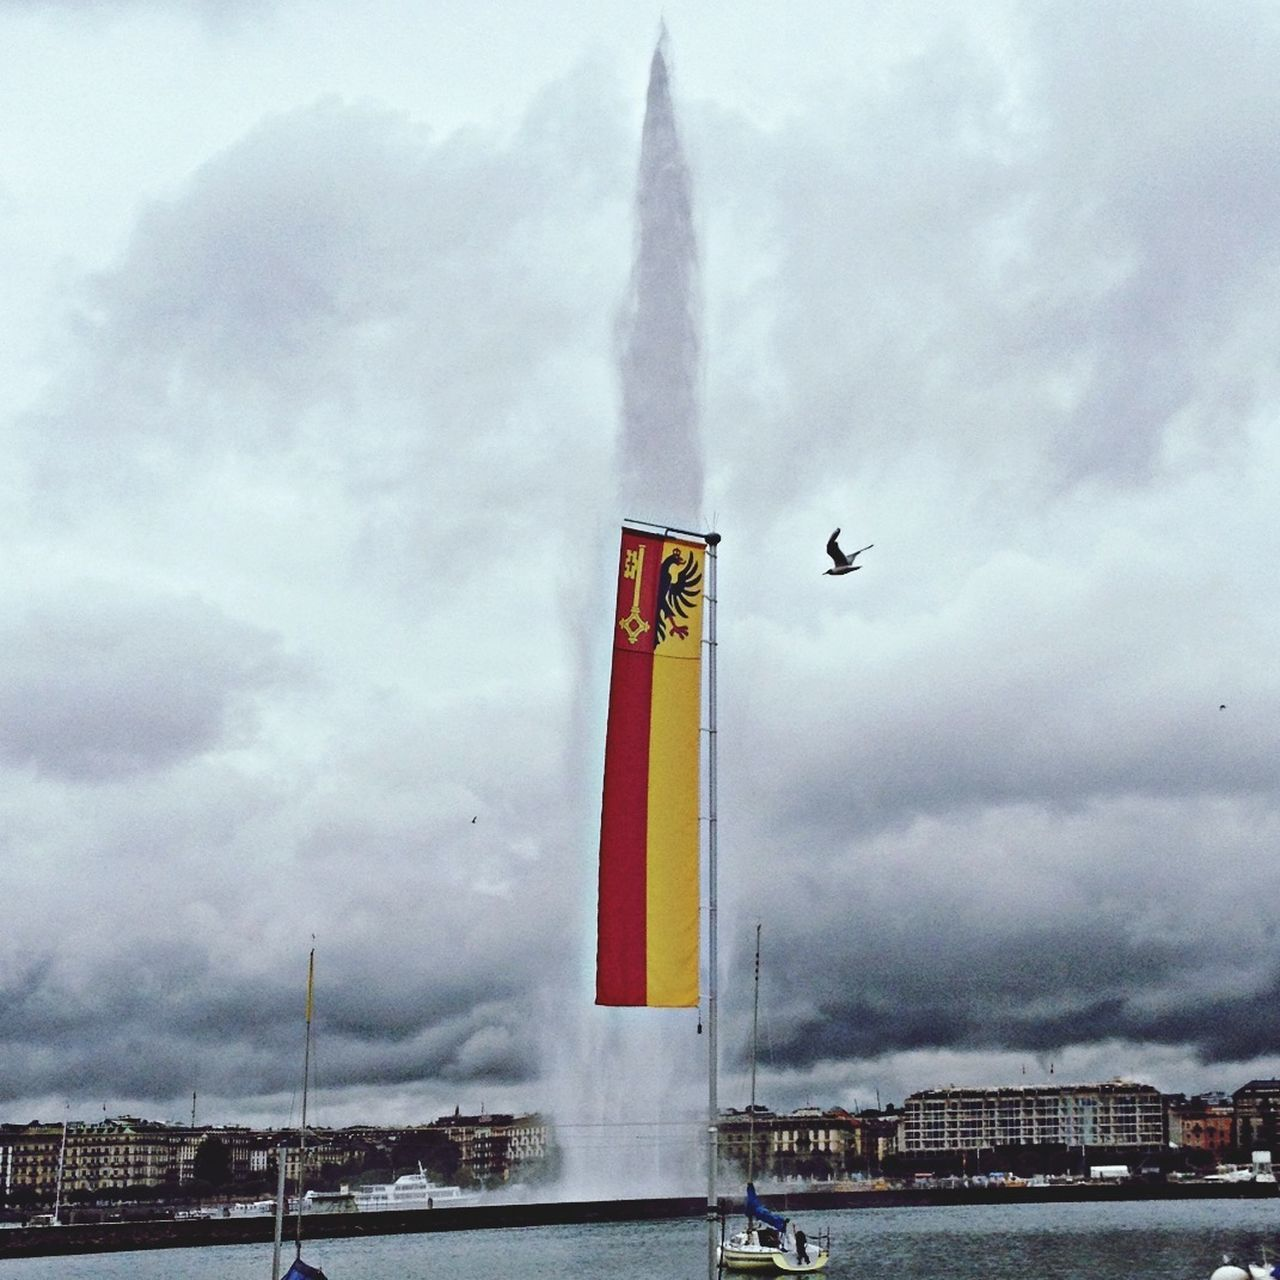 #Geneve cloudy day #seabird heading to the flag into the #jetd'eau